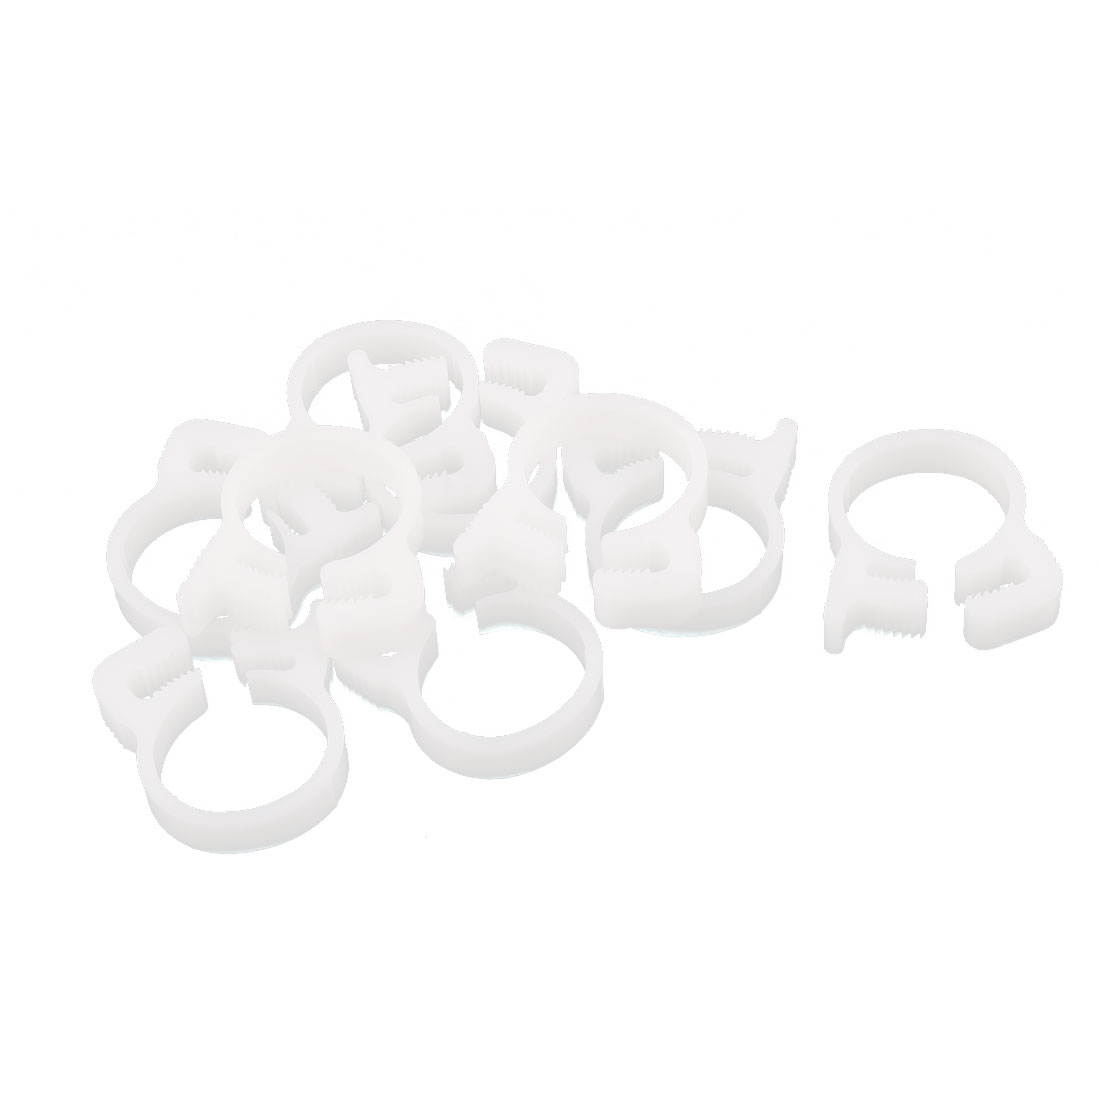 10 Pcs 15.3-15.9mm Range Plastic Adjustable Band Hose Pipe Fastener Clamp